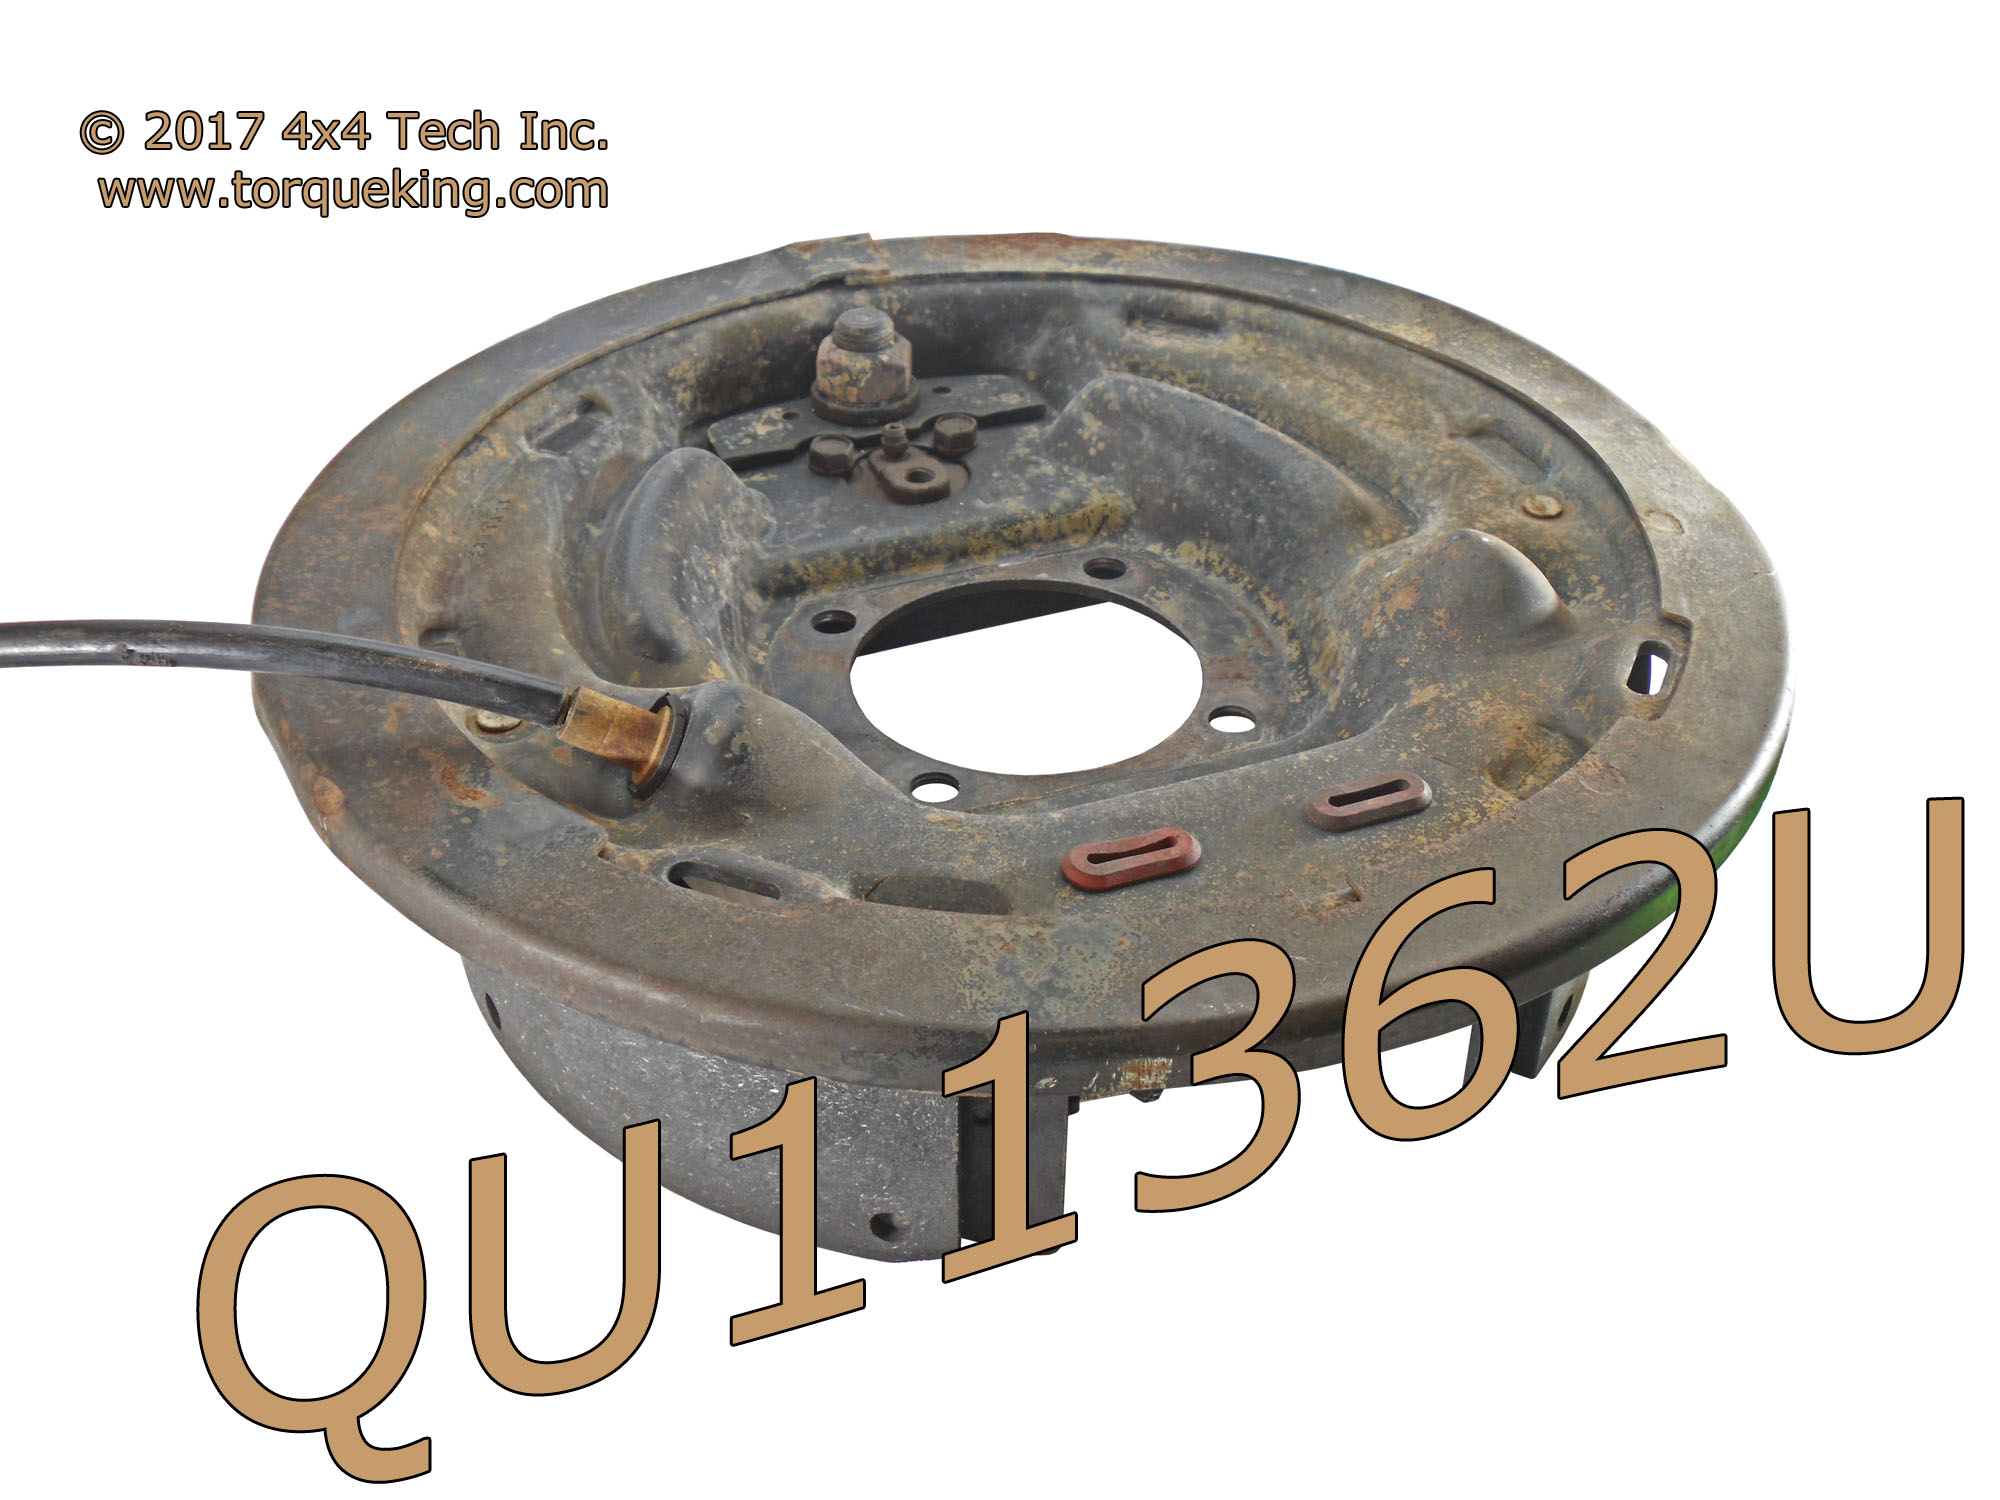 Qu Usj on 2000 Dodge 2500 Rear Drum Brakes